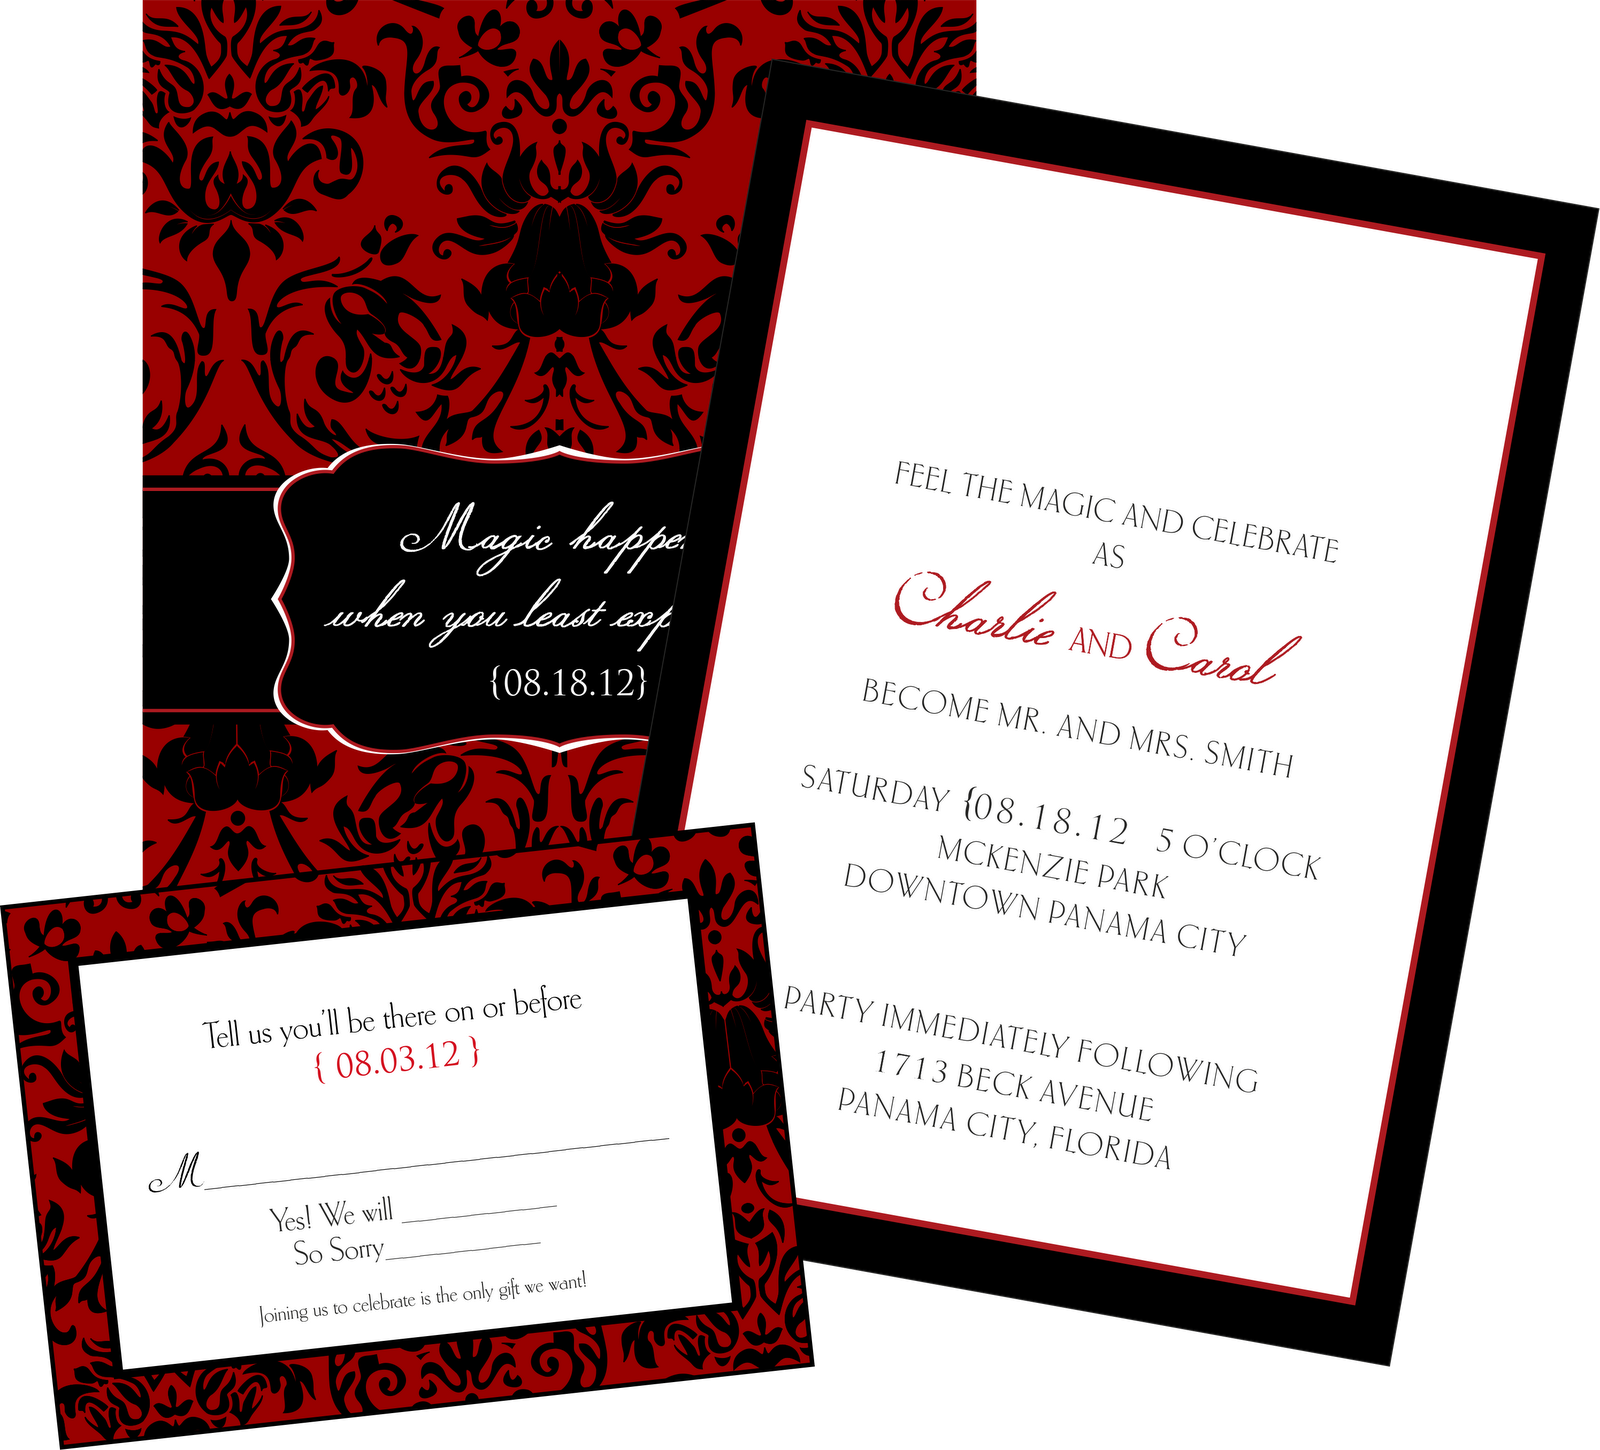 printing invitations cardstock | wedding invitations | Pinterest ...